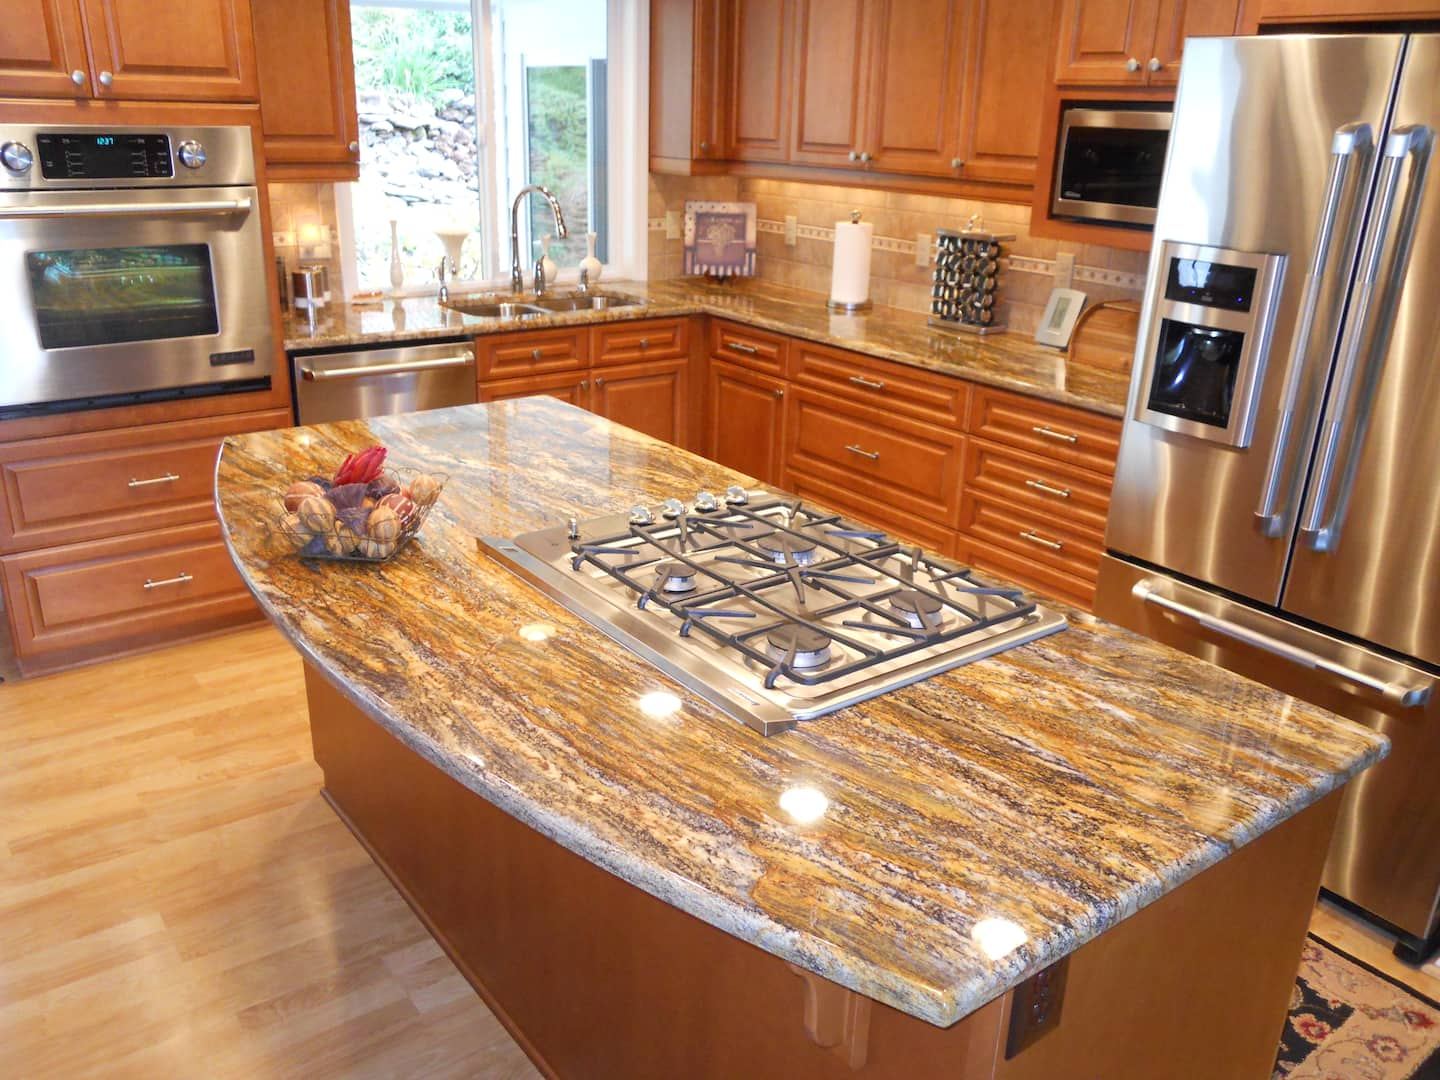 How Much Should A Kitchen Remodel Cost Angies List - How much for a kitchen remodel